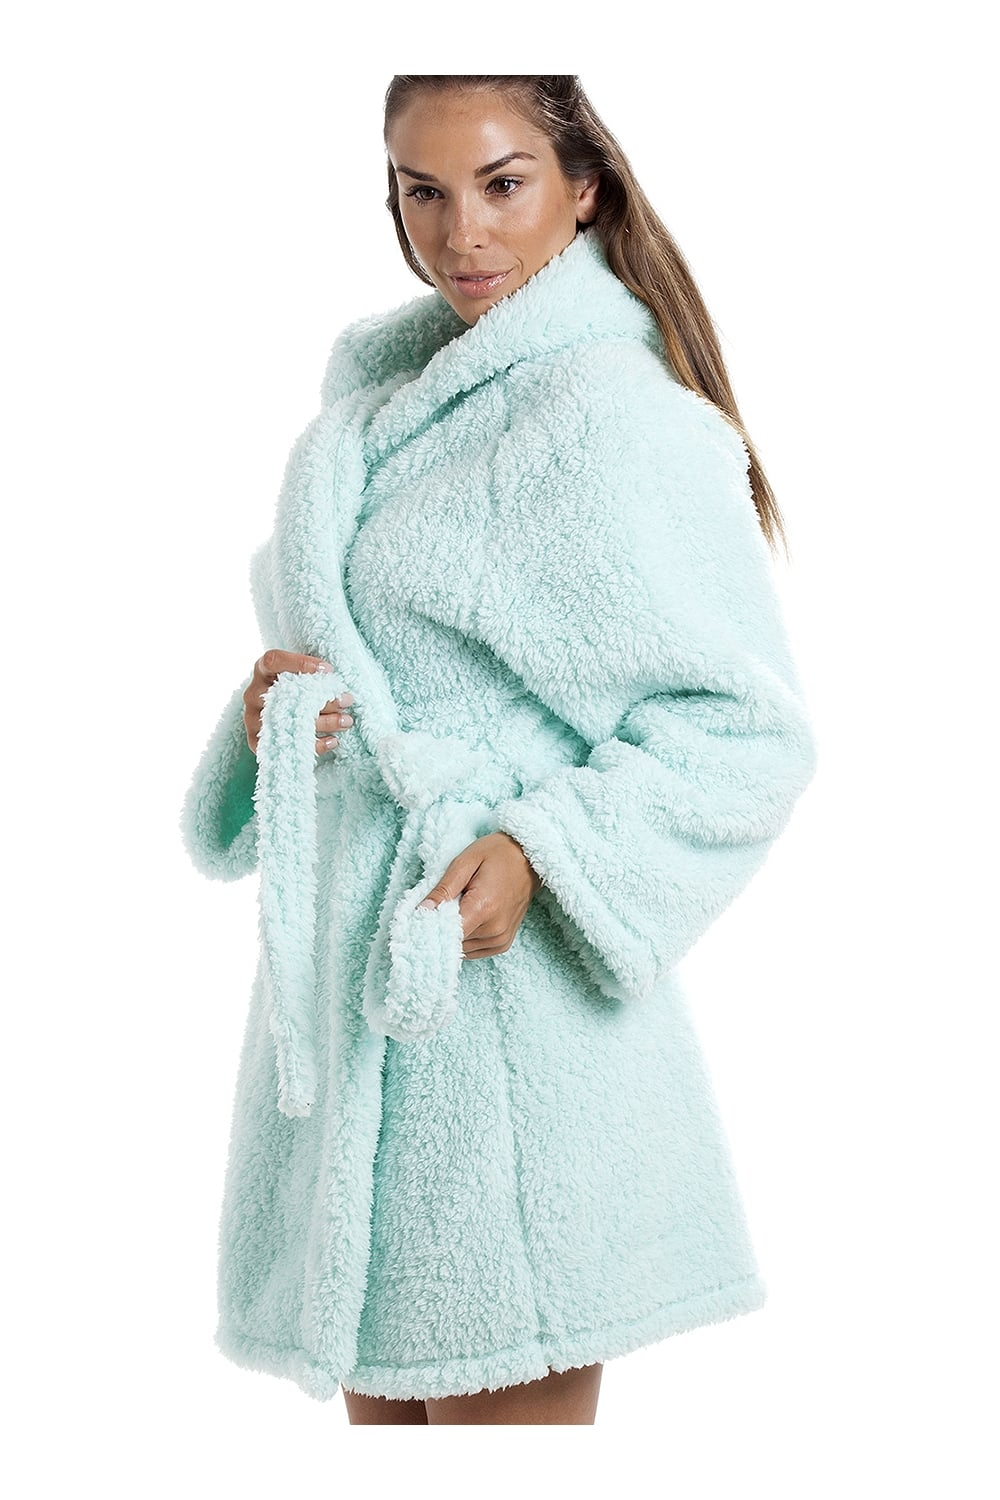 Camille Luxurious Lightweight Soft Fluffy Fleece Mint Hooded Dressing Gown 2fcf130168f9